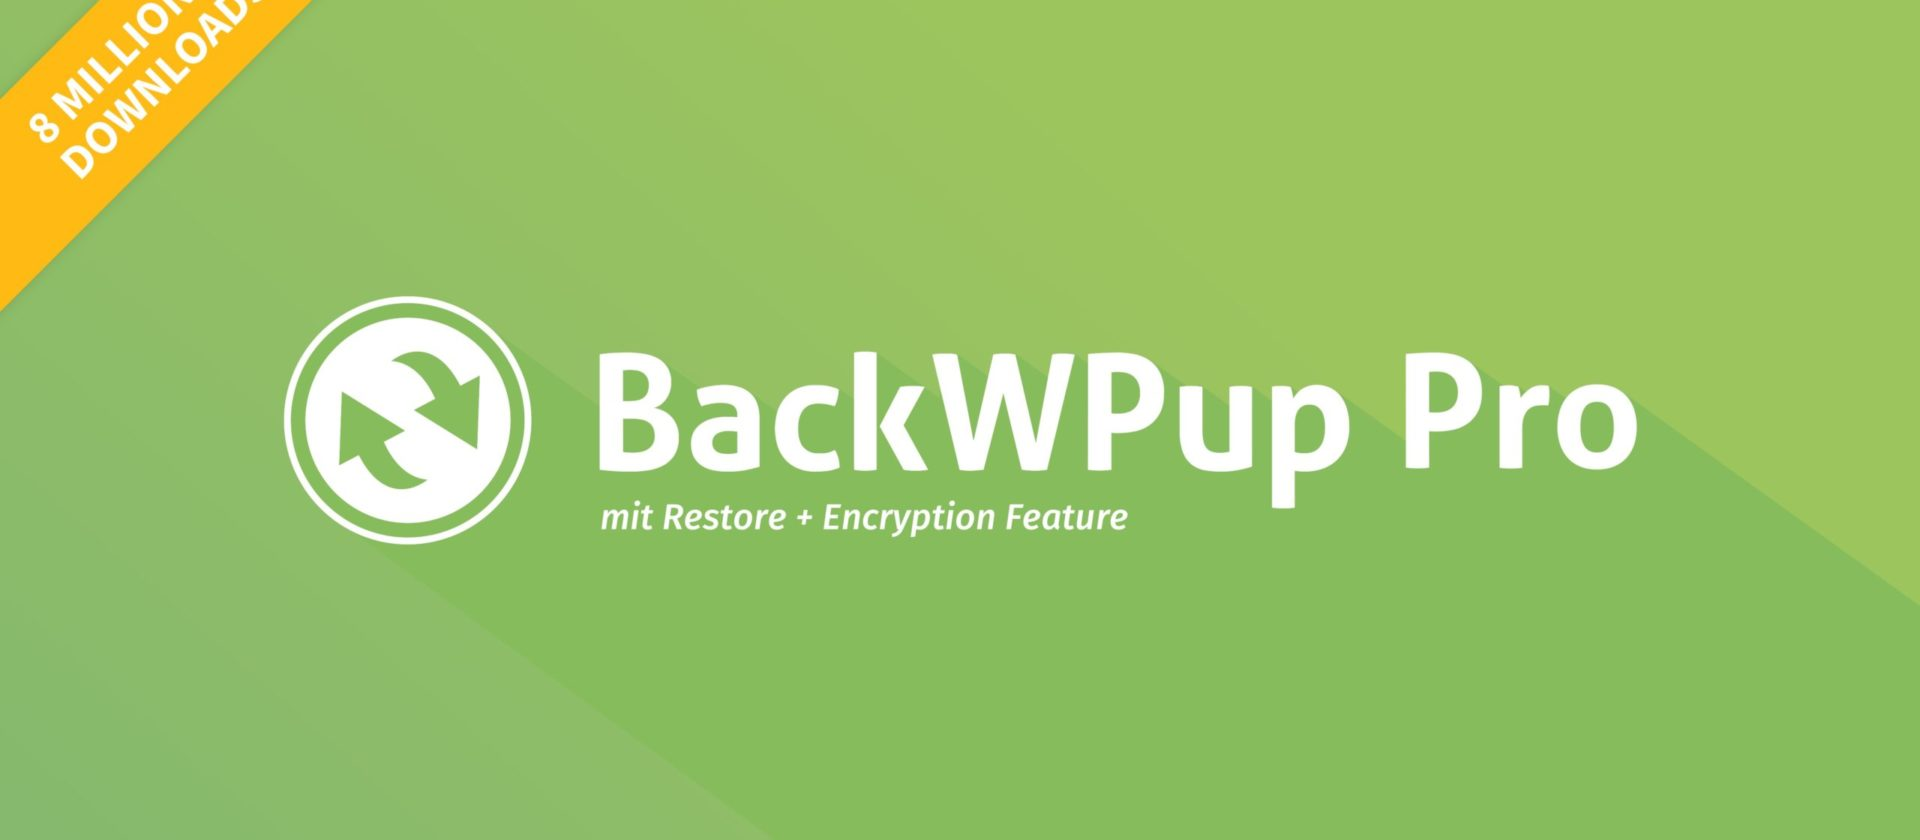 BackWPup feiert 8 Millionen Downloads